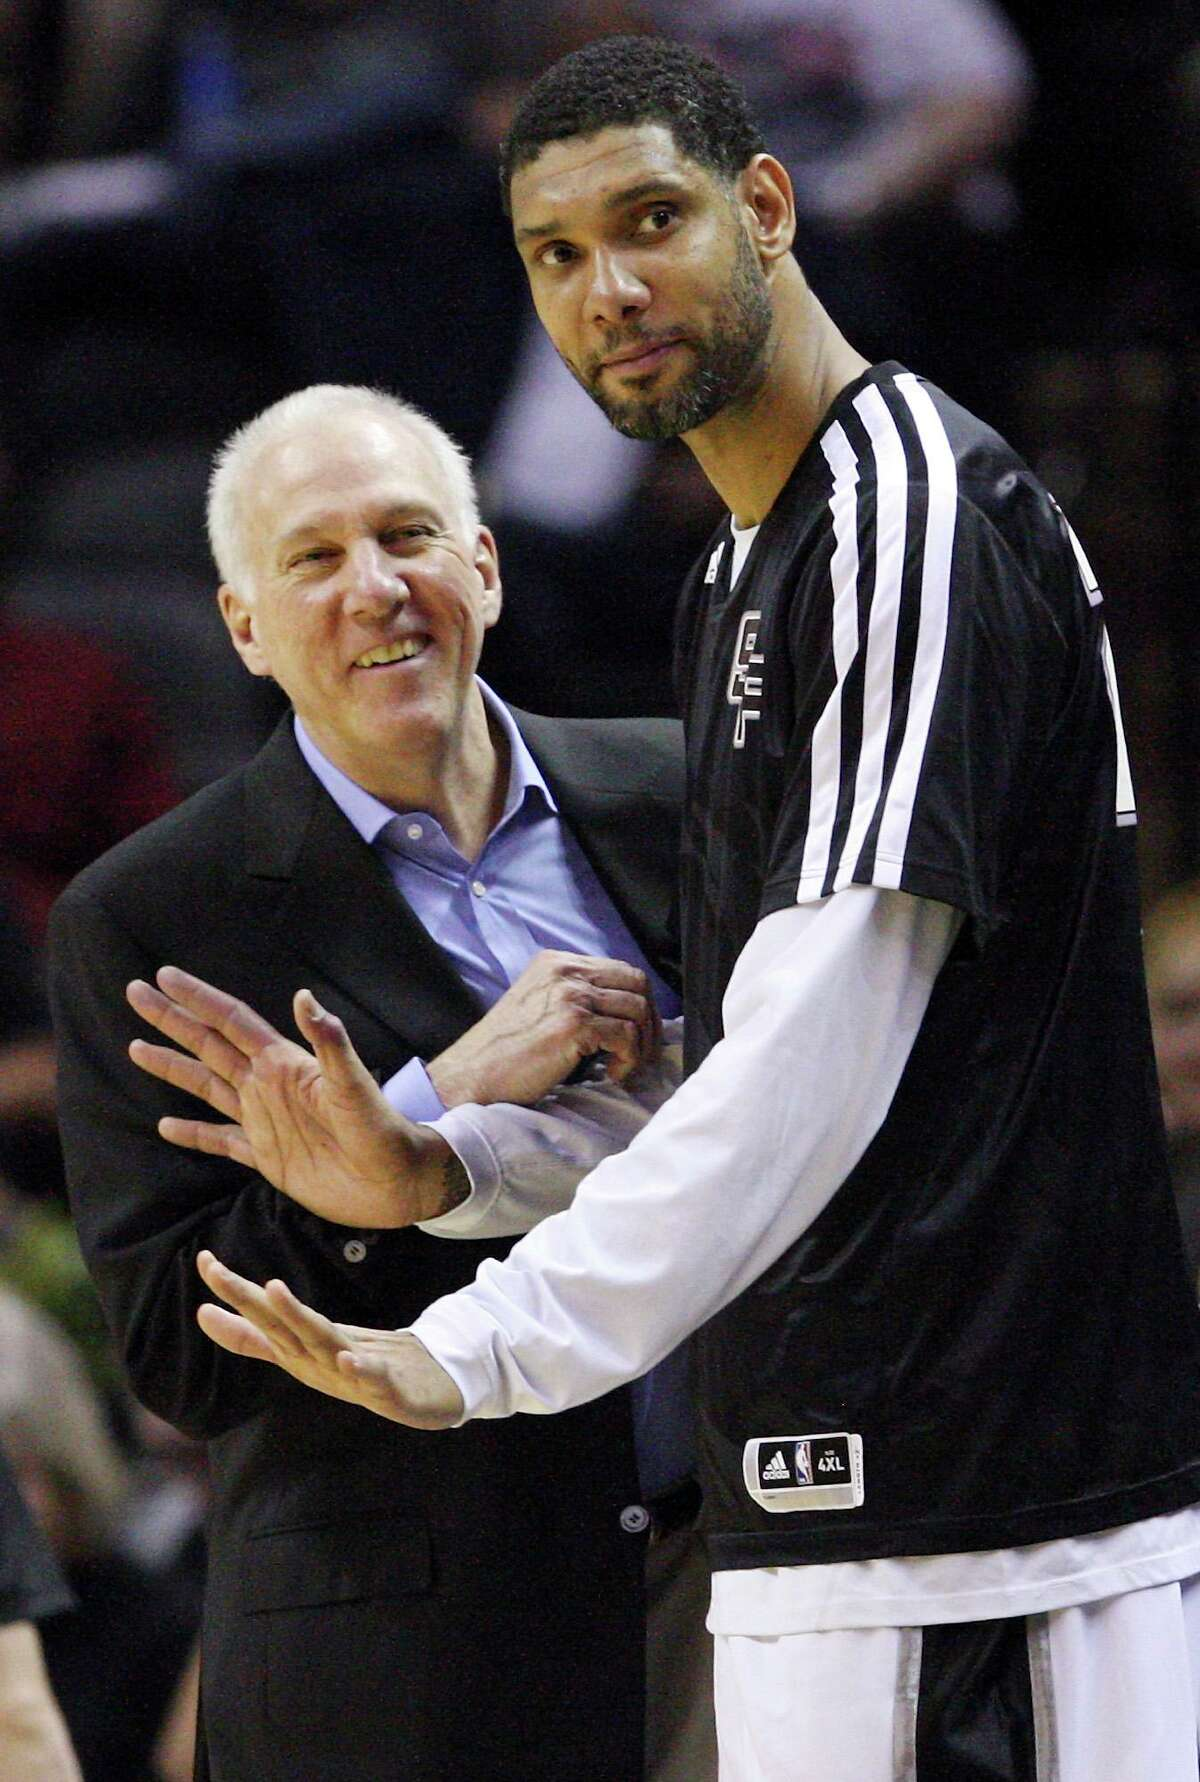 San Antonio Spurs head coach Gregg Popovich and Tim Duncan joke on the bench during second half action against the 76ers Monday March 24, 2014 at the AT&T Center. The Spurs won 113-91.